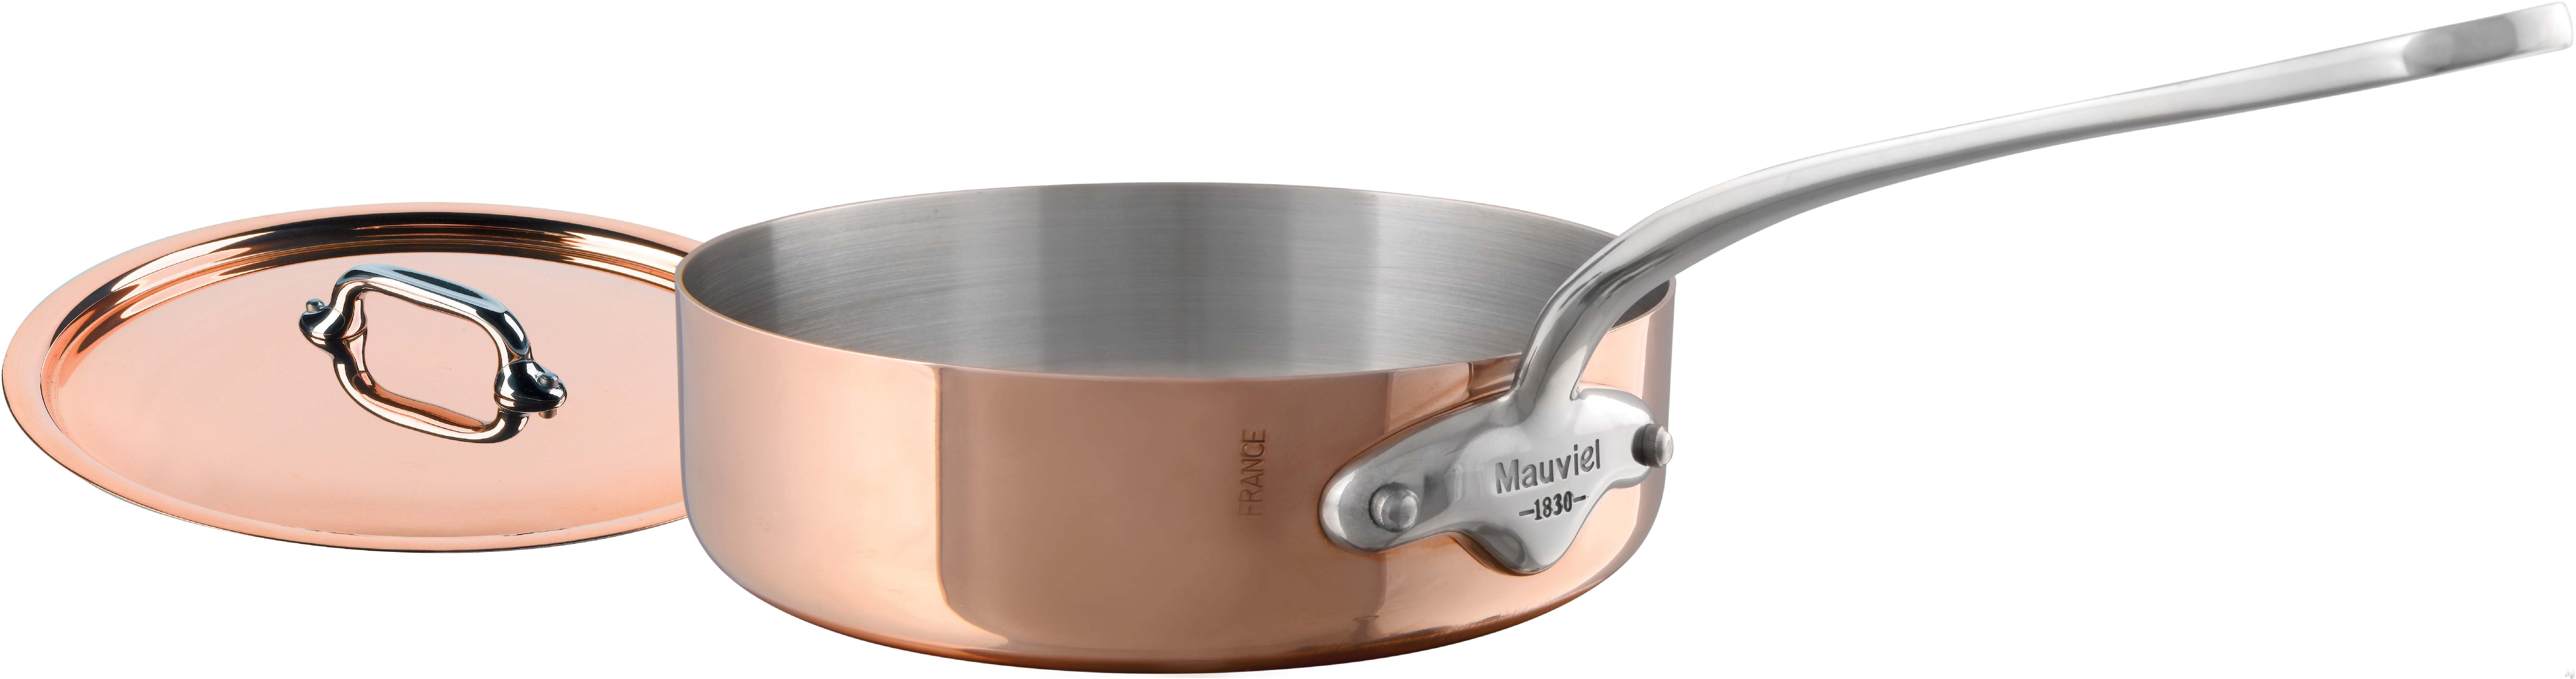 Mauviel 611125 M'150S 3-1/5 Quart Saute Pan and Lid with Copper Stainless Steel, High Performance and Non-Reactive